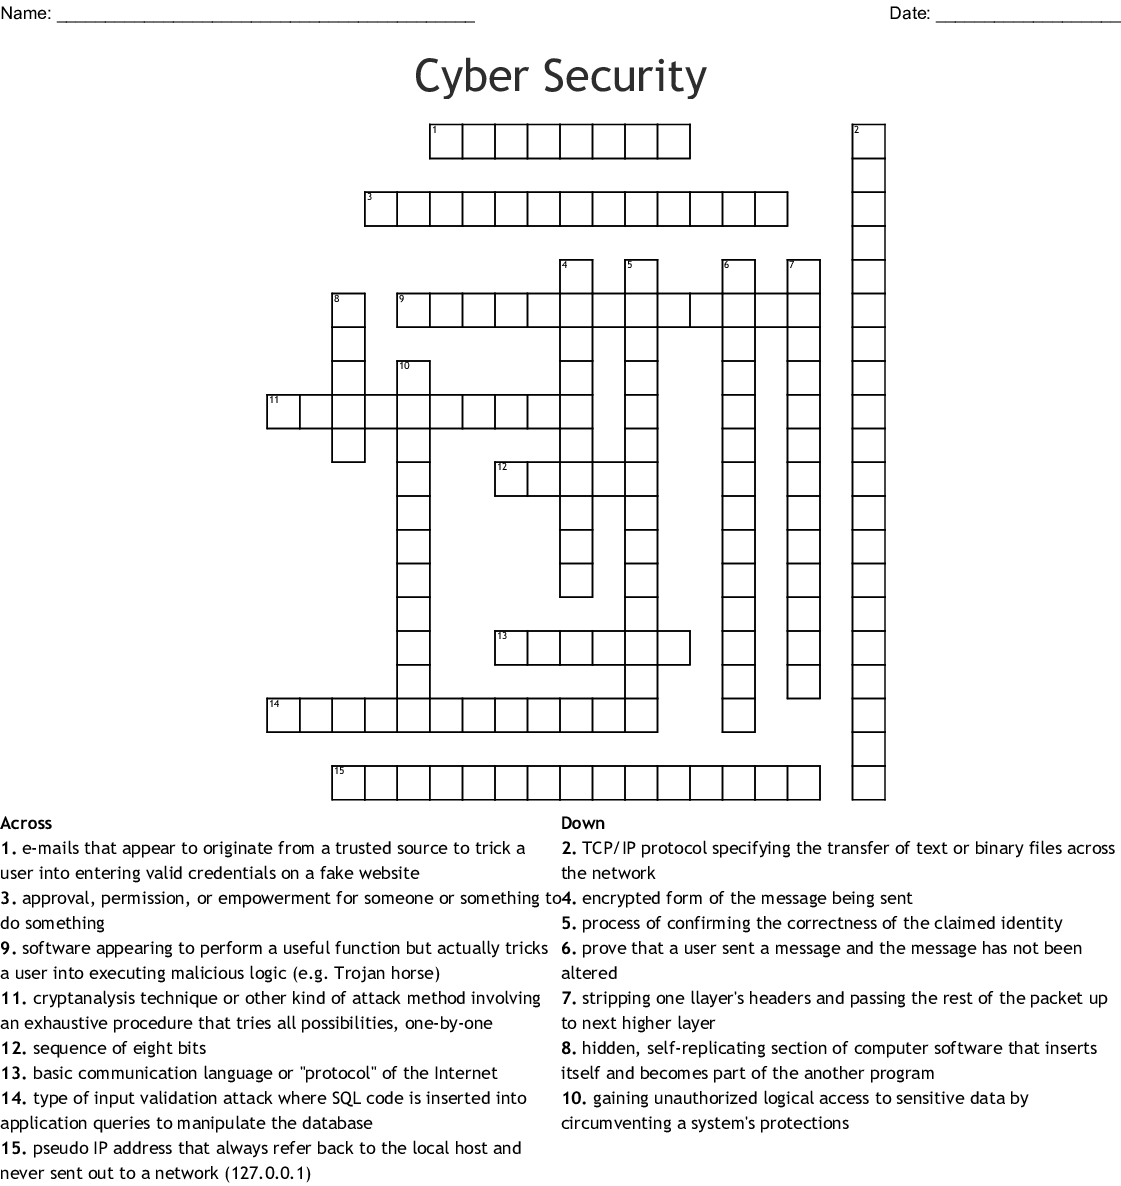 Cyber Security Crossword